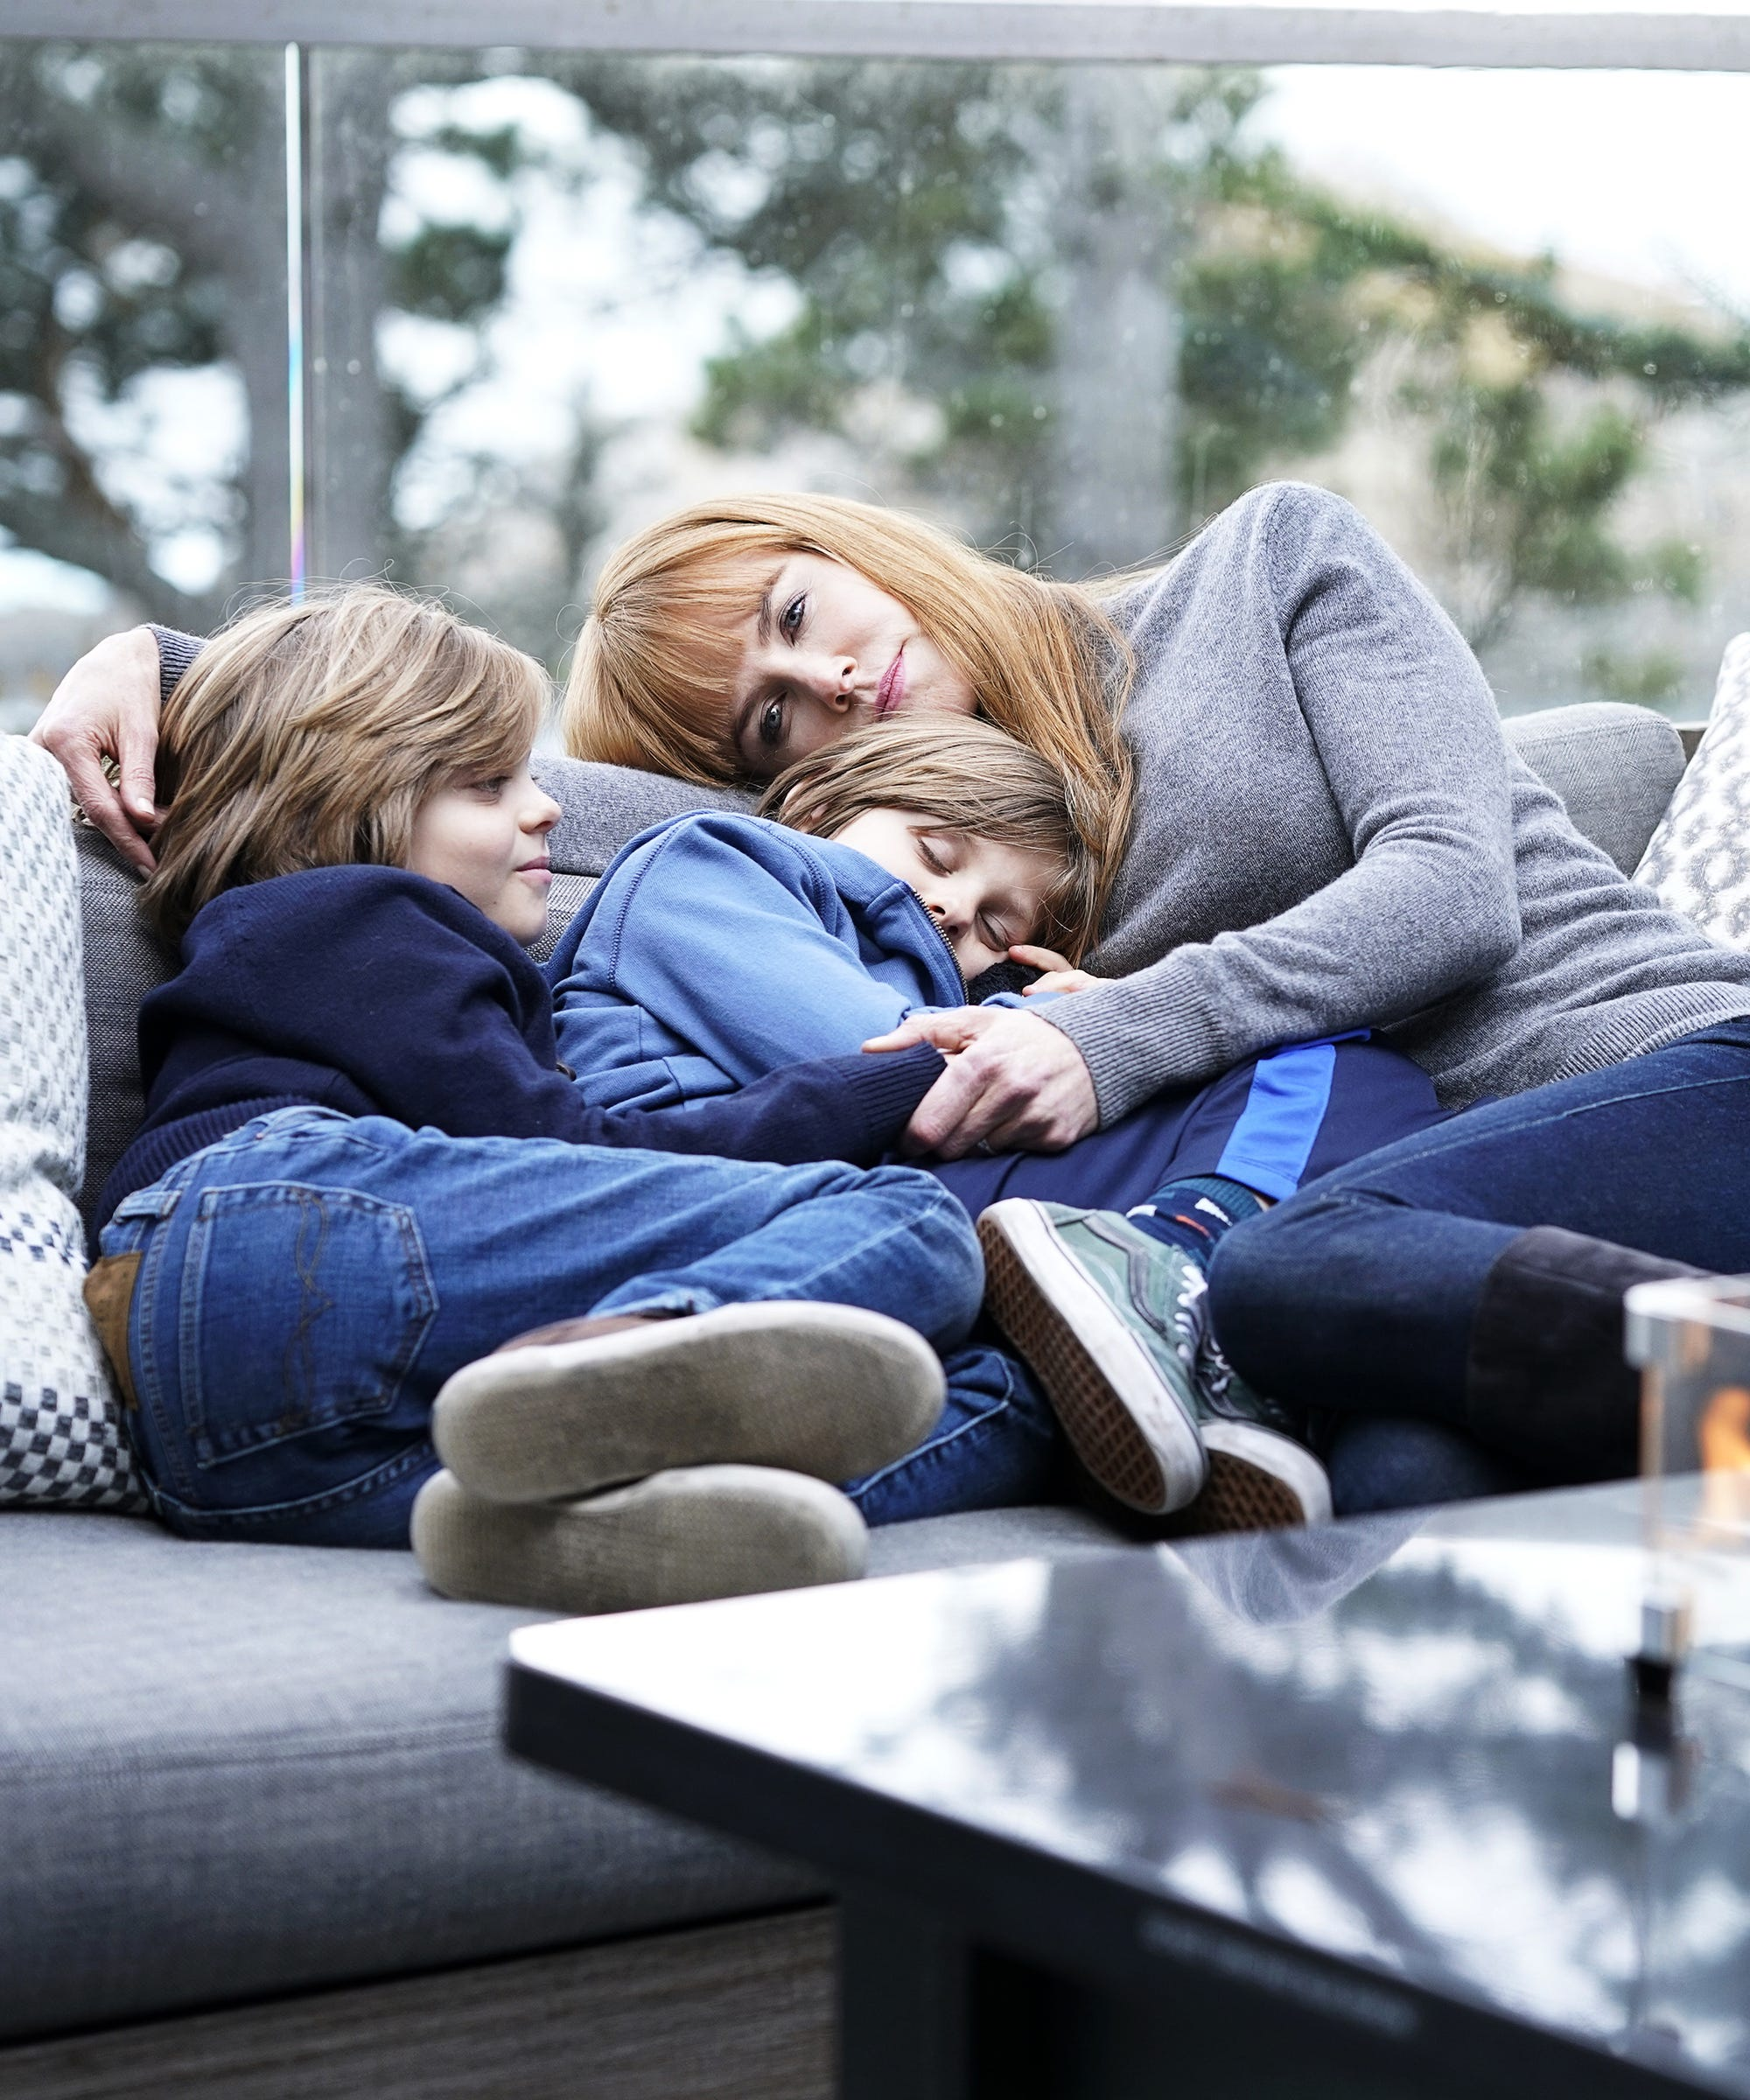 """Big Little Lies Season 2, Episode 2 """"Tell-Tale Heart"""" Introduces A New Mom & New Rich Drama"""